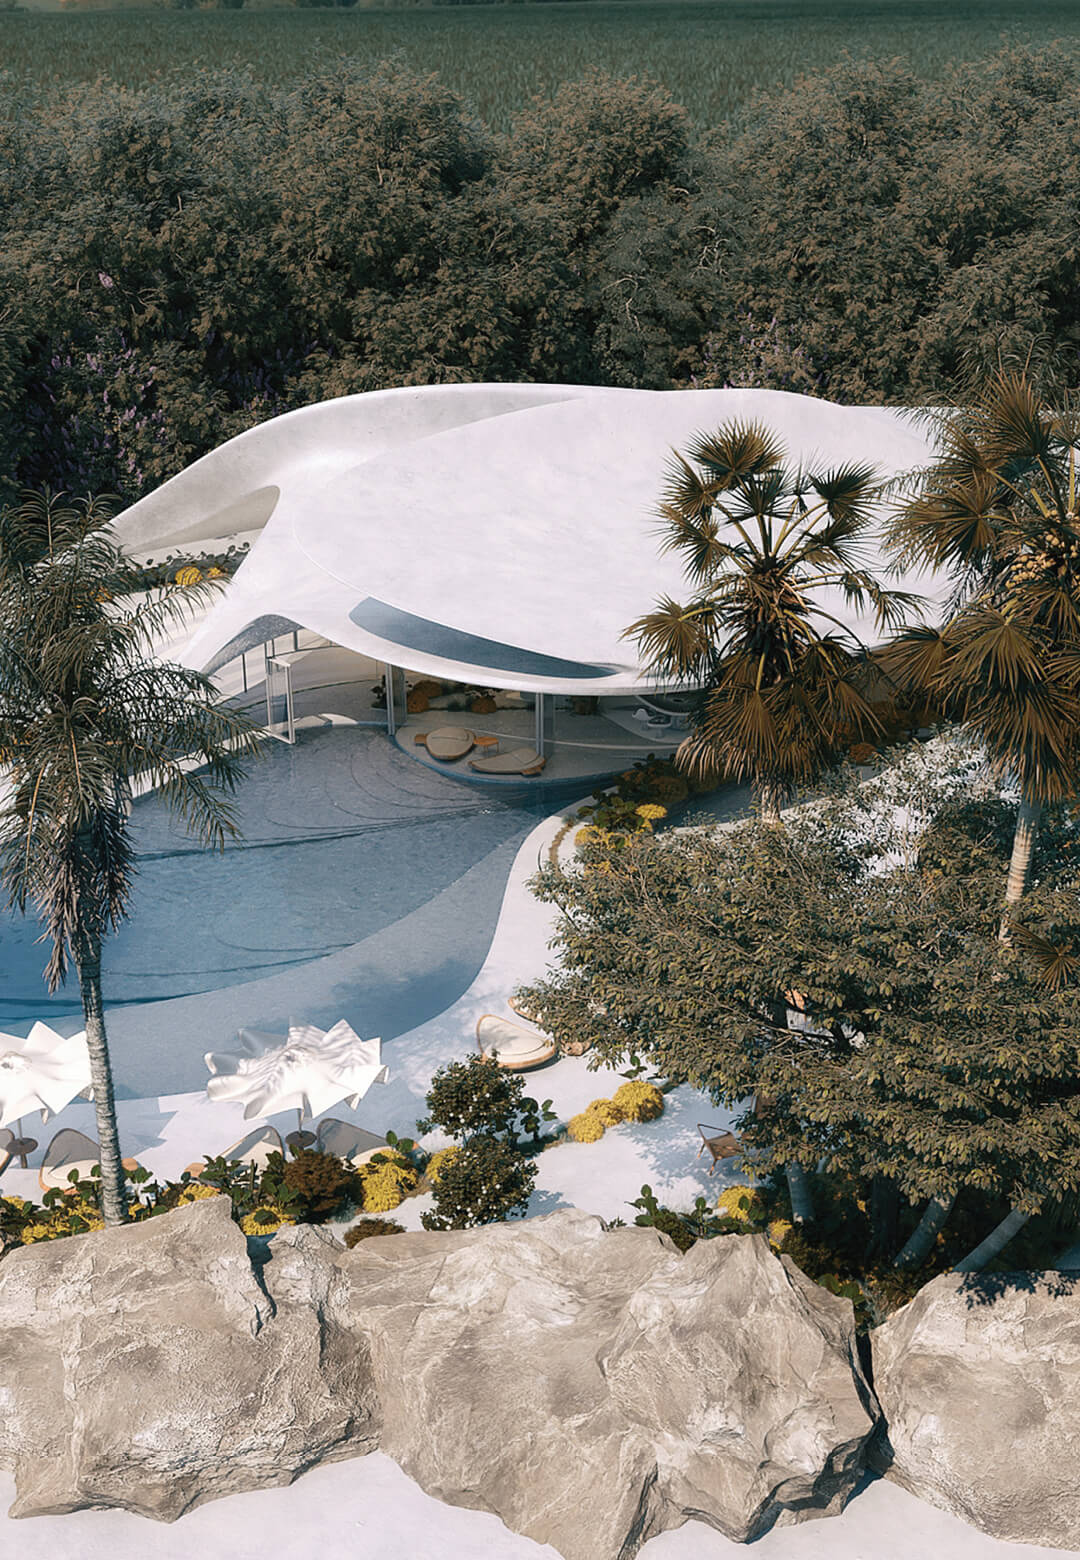 Mask Architects imagines the organic Villa G01 in Sardinia, Italy | Villa G01 imagined by Mask Architects | STIRworld